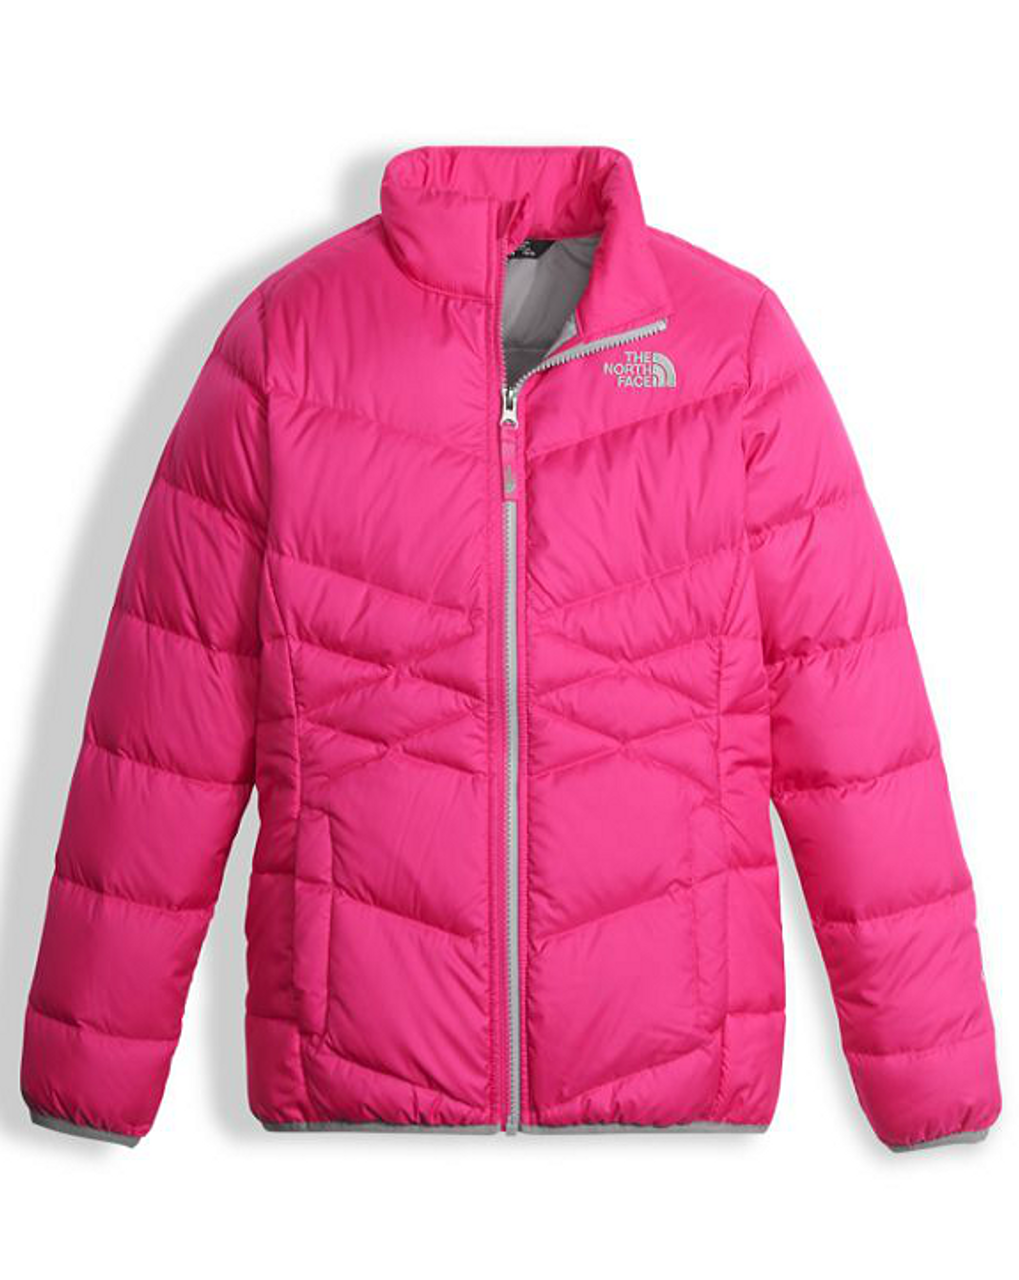 8bd2c2f88 The North Face Andes Down Jacket '18 | Girl's